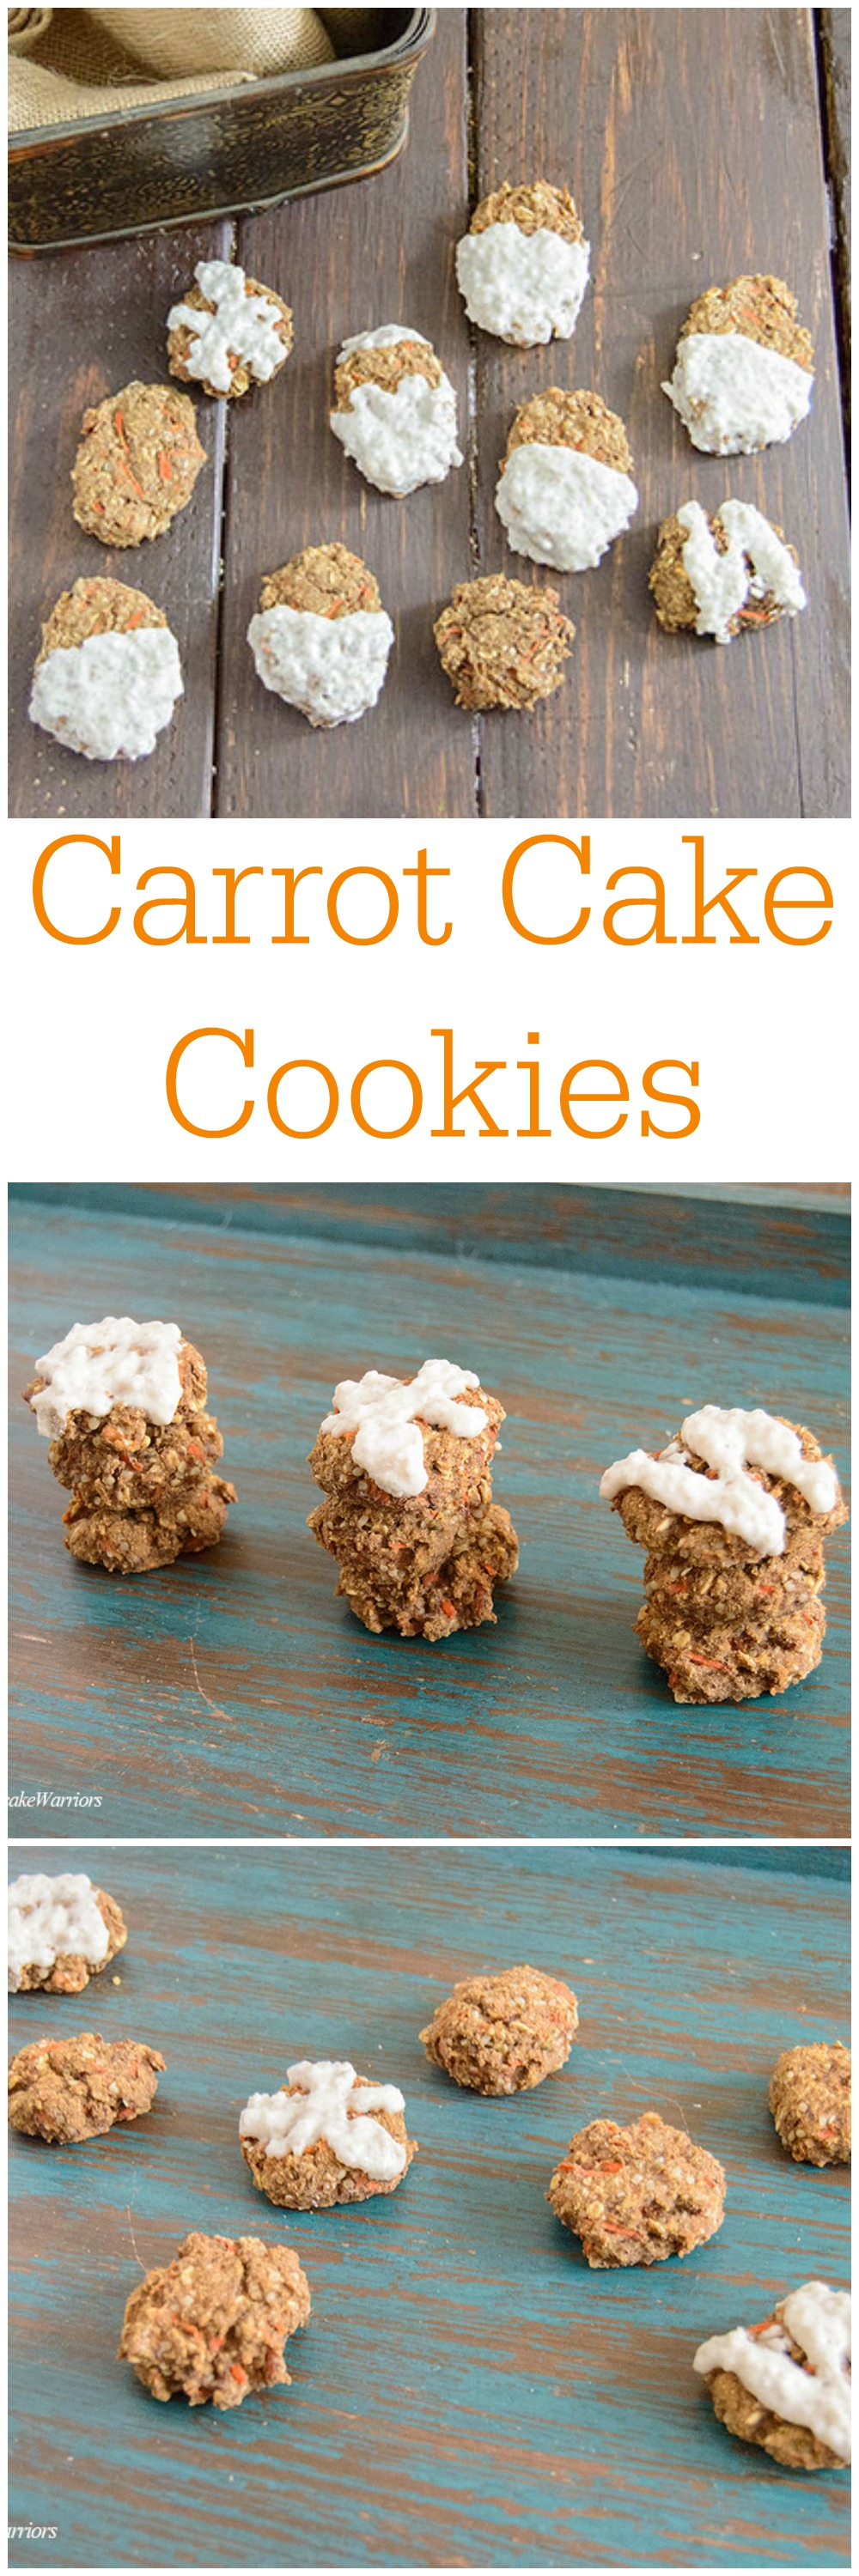 Healthy Carrot Cake Cookies - packed with protein, low fat, gluten free and vegan! These cookies are seriously addicting but healthy!